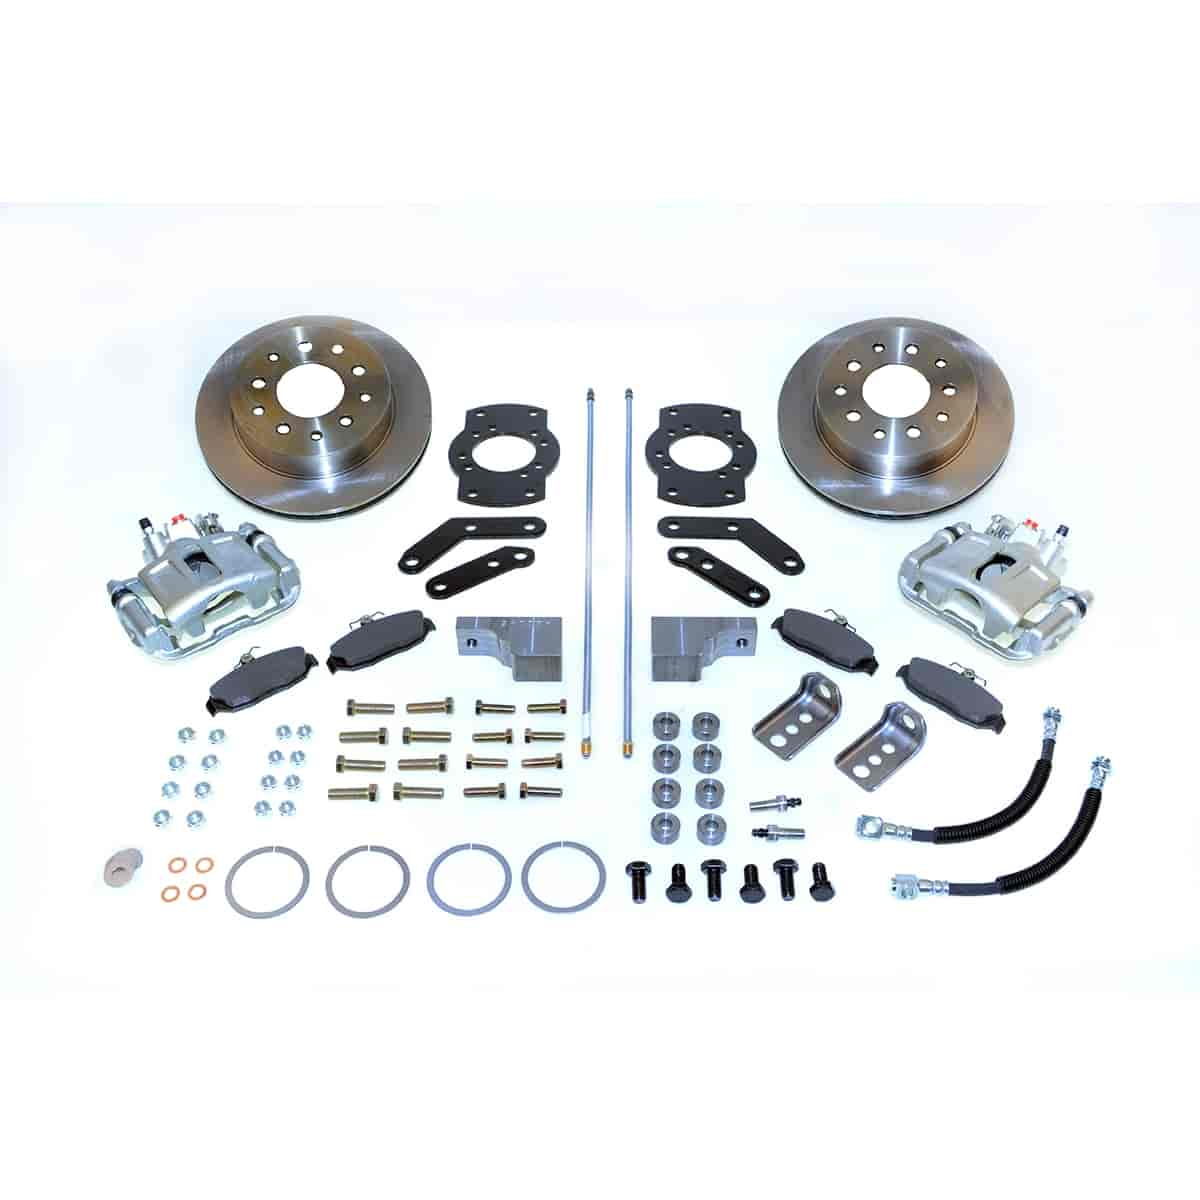 Stainless Steel Brakes A125-3 - Stainless Steel Brakes Single Piston Rear Disc Brake Conversion Kit